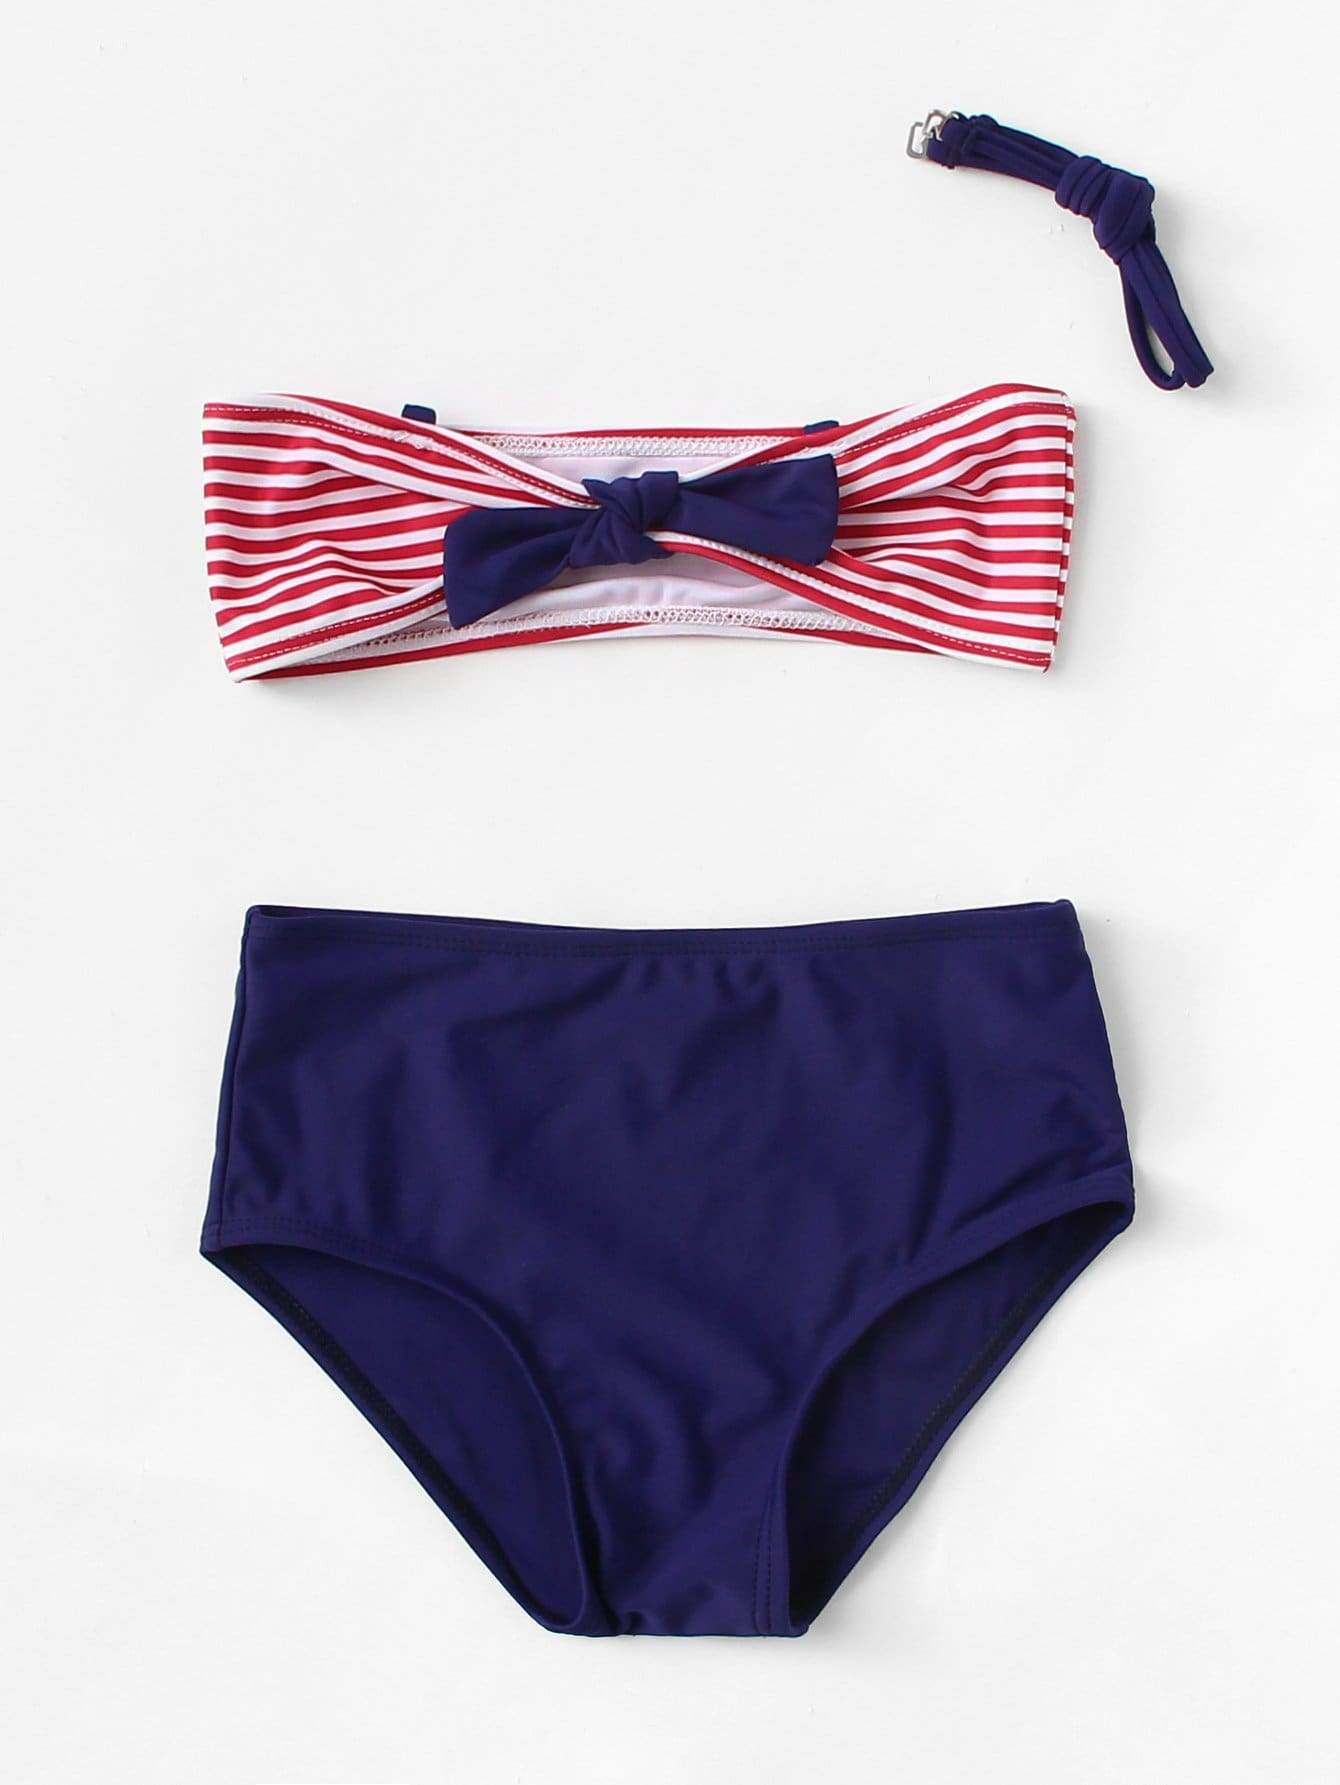 Girls Striped Bow Tie Bikini Set bow tie bardot bikini set